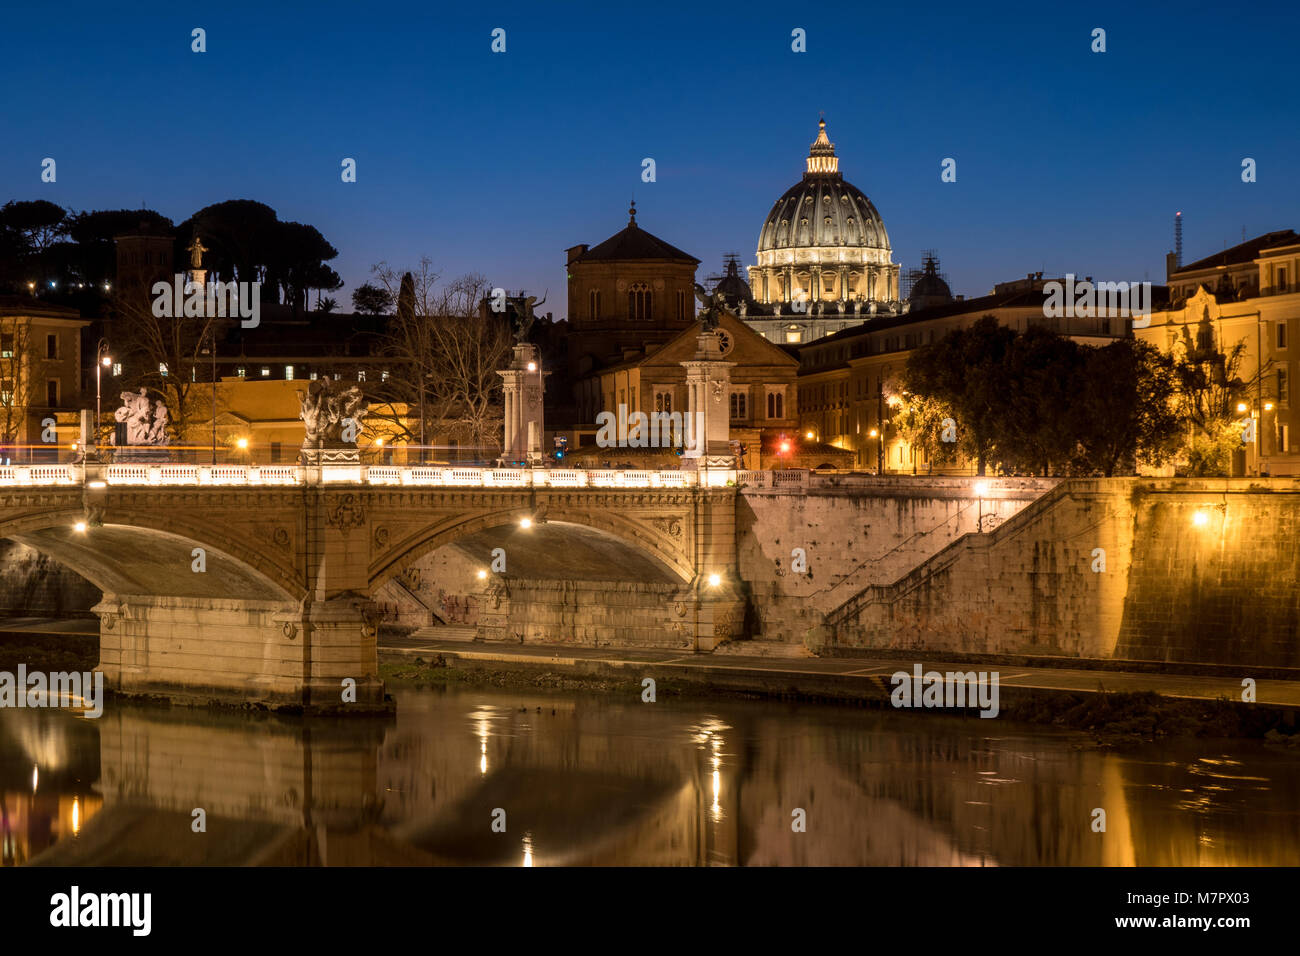 Rome at night with St. Peter Basilica in Vatican visible - Stock Image